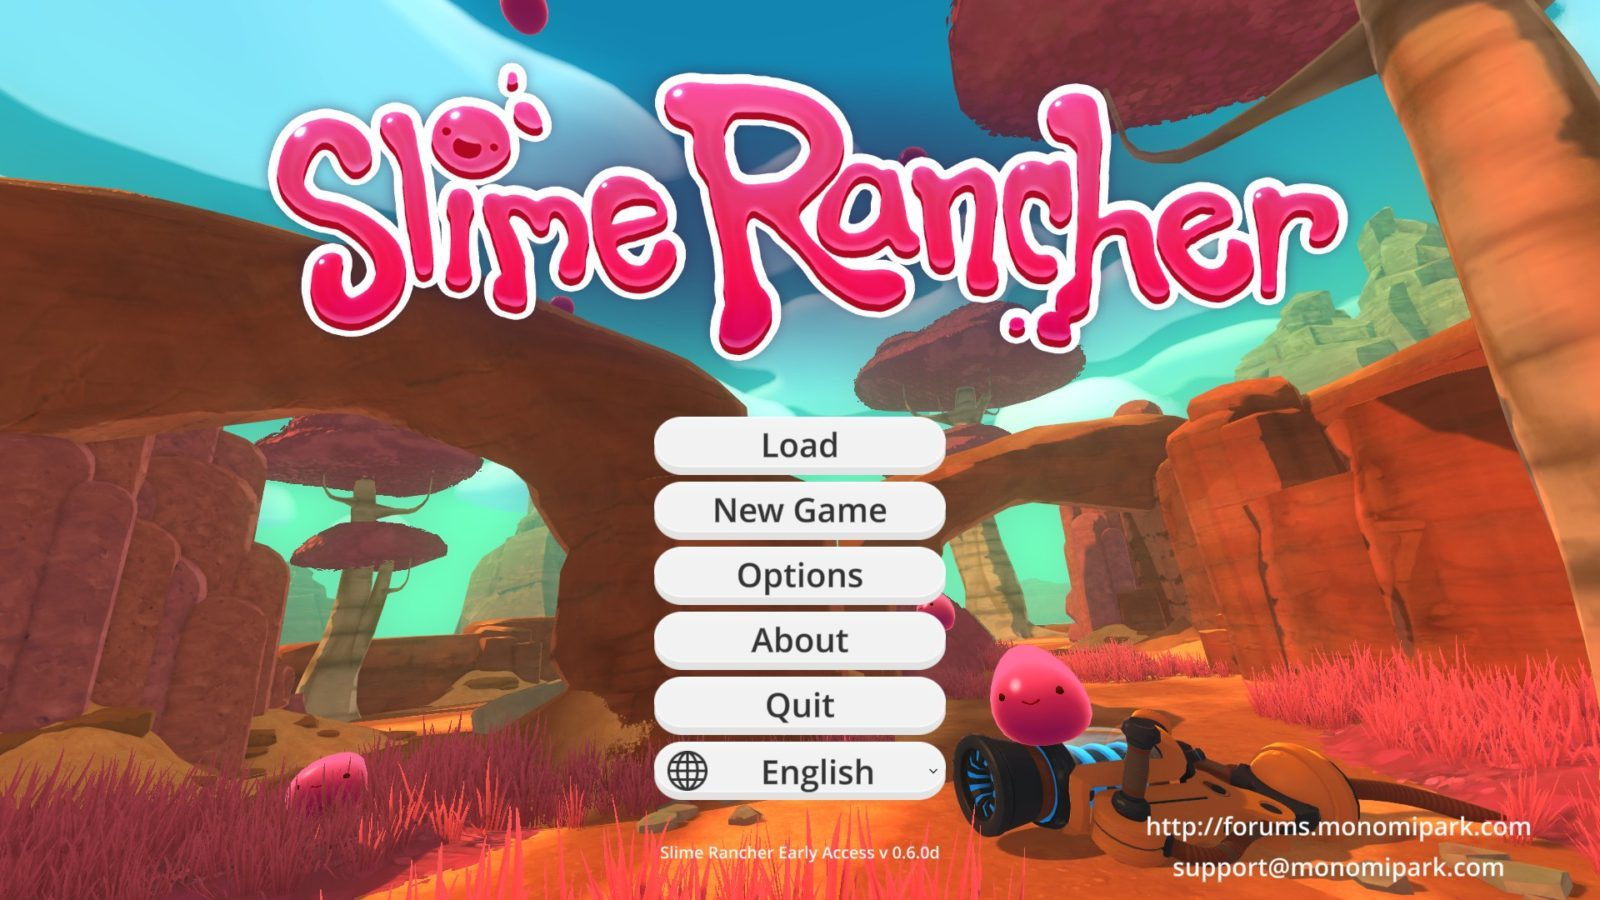 My Slime Rancher Early Access Experience - The World of Nardio